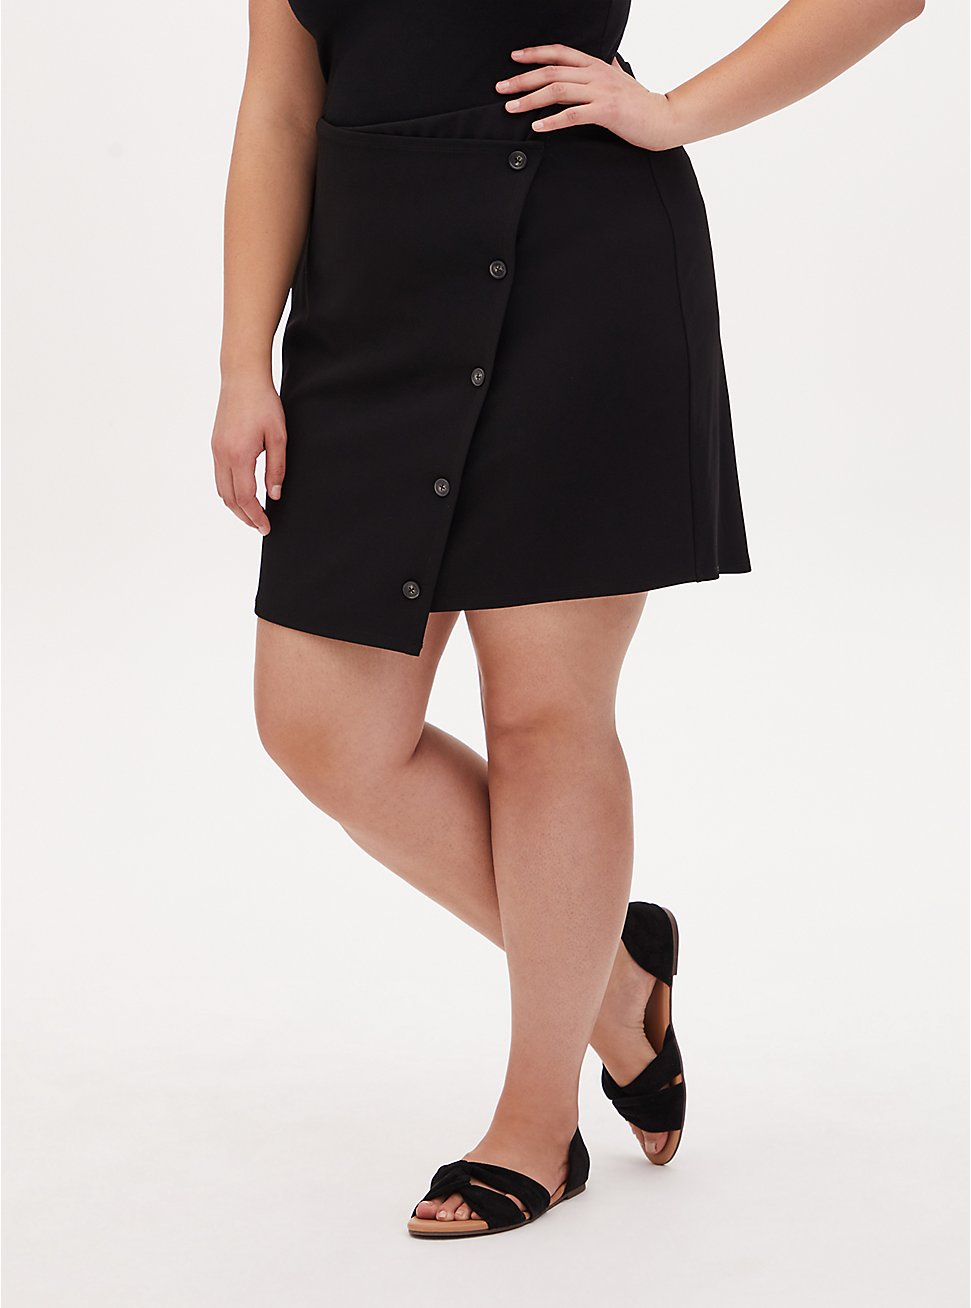 Black Crepe Scuba Knit Button Mini Skirt, DEEP BLACK, hi-res